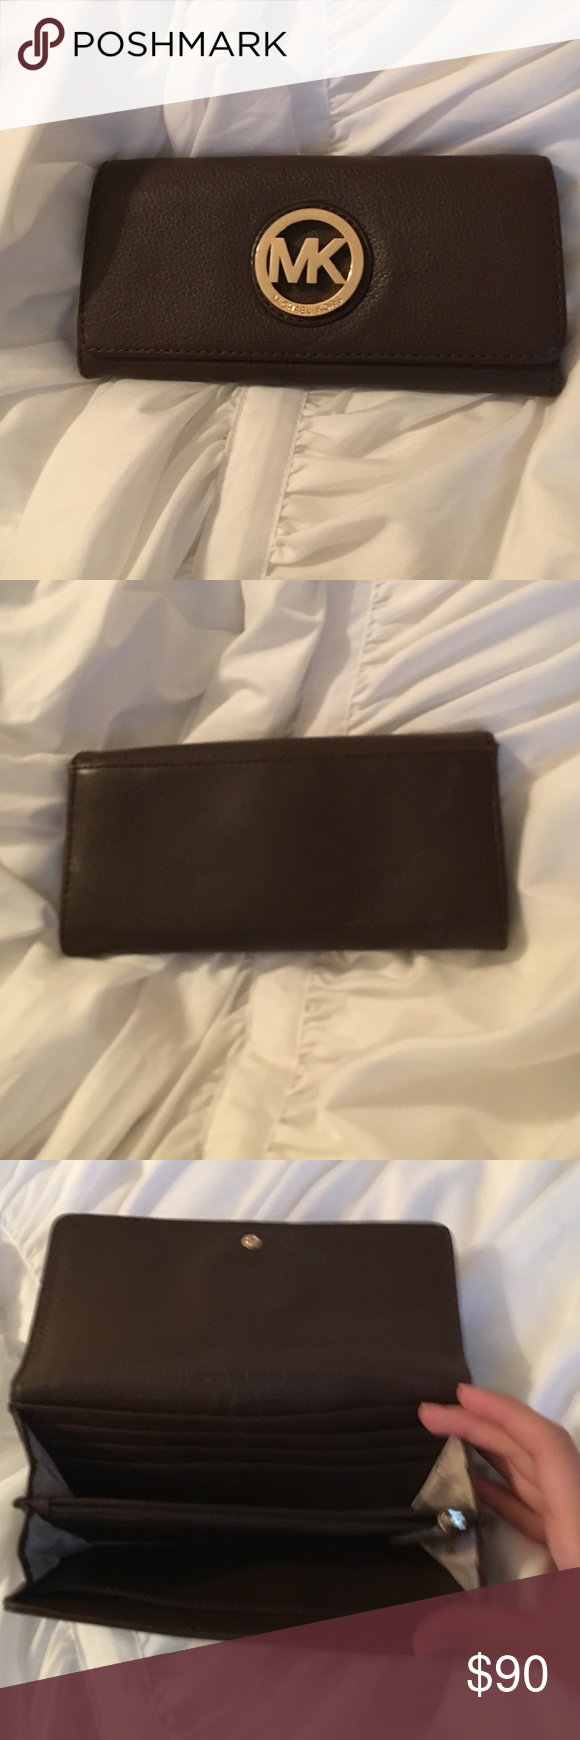 Michael Kors brown leather wallet Perfect condition, never used. Offers accepted and trades considered. Michael Kors Bags Wallets